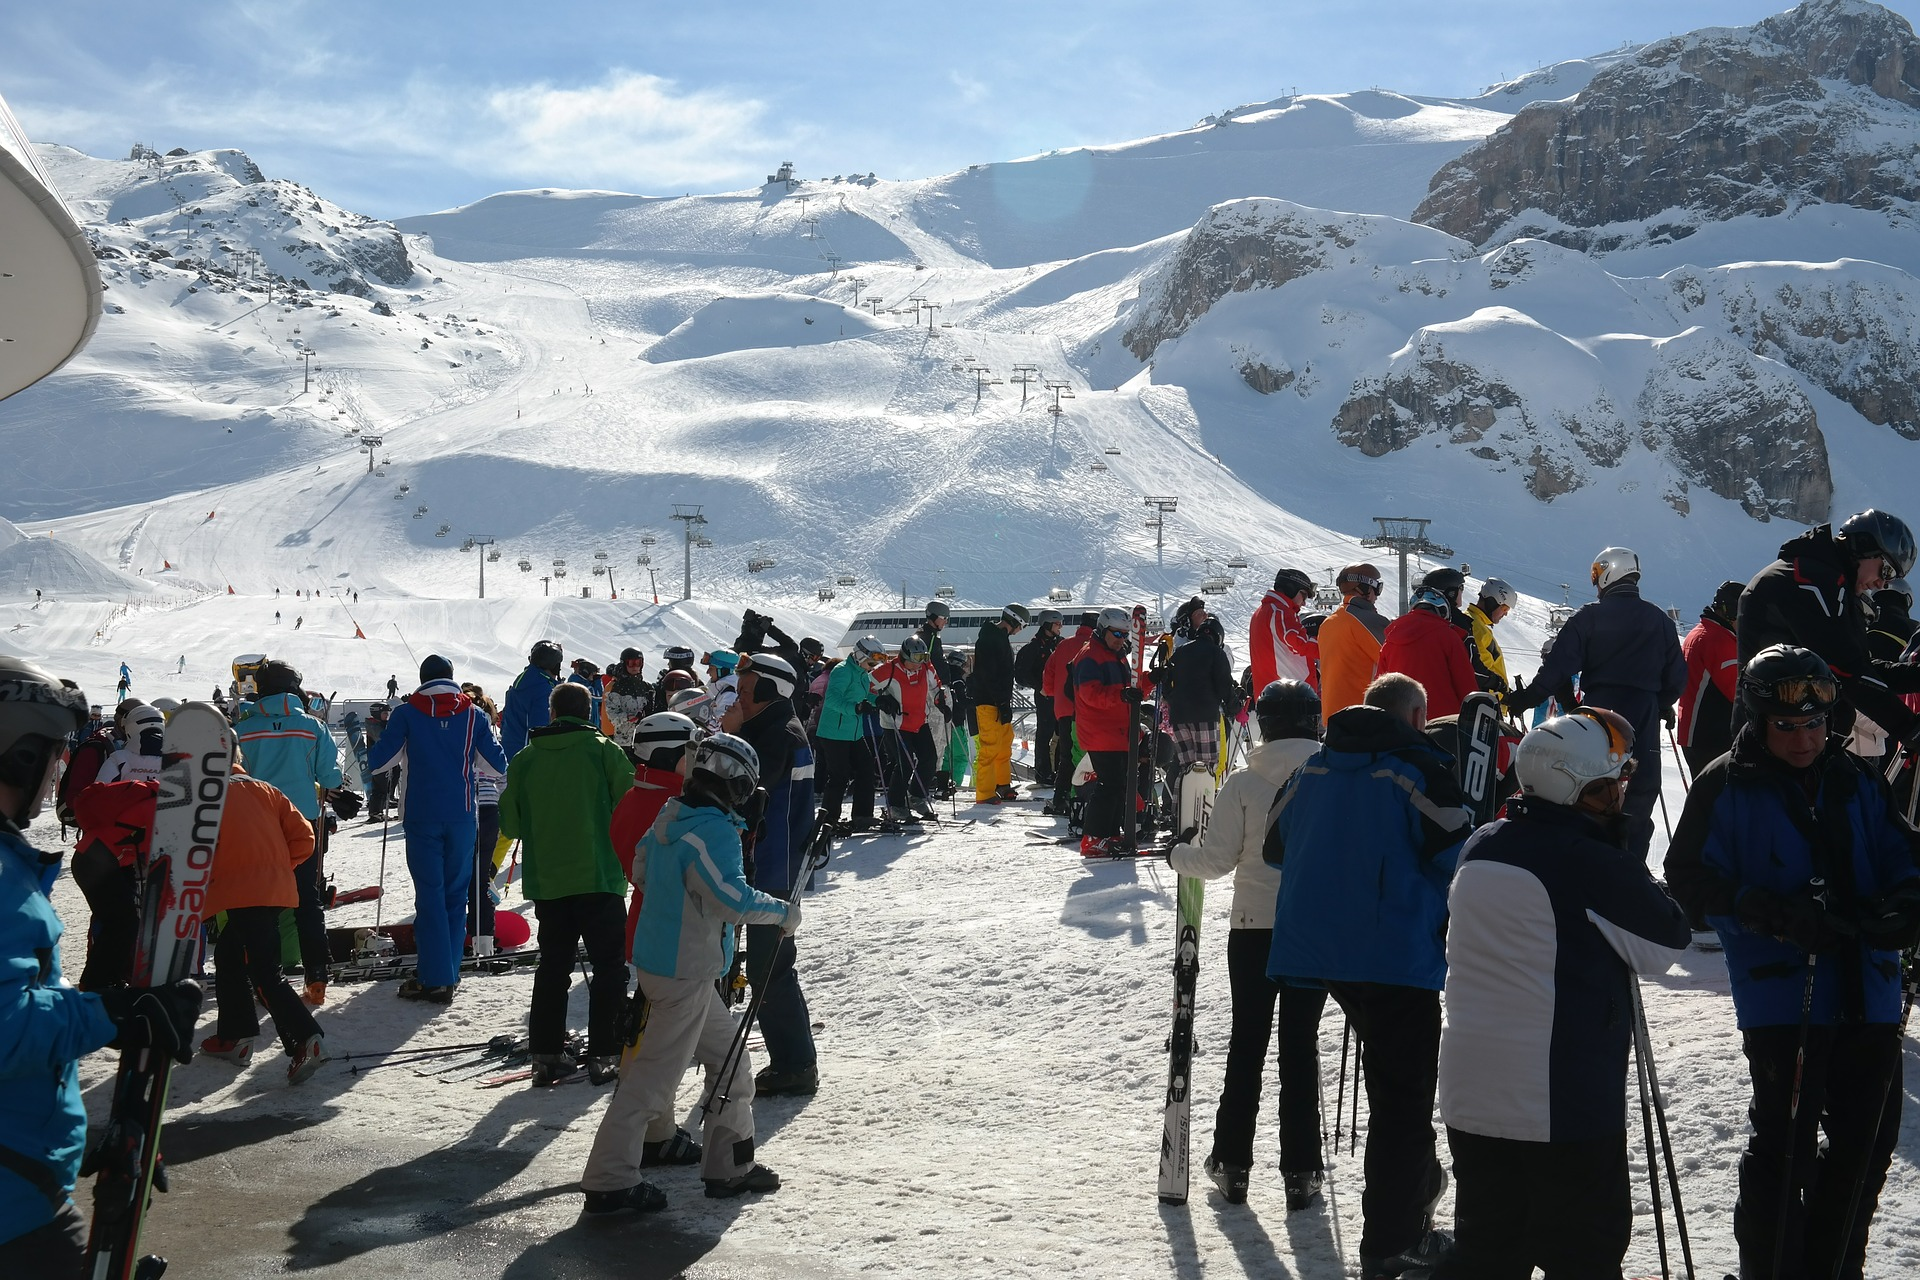 FIS RULES FOR SAFETY IN WINTER SPORT CENTRES